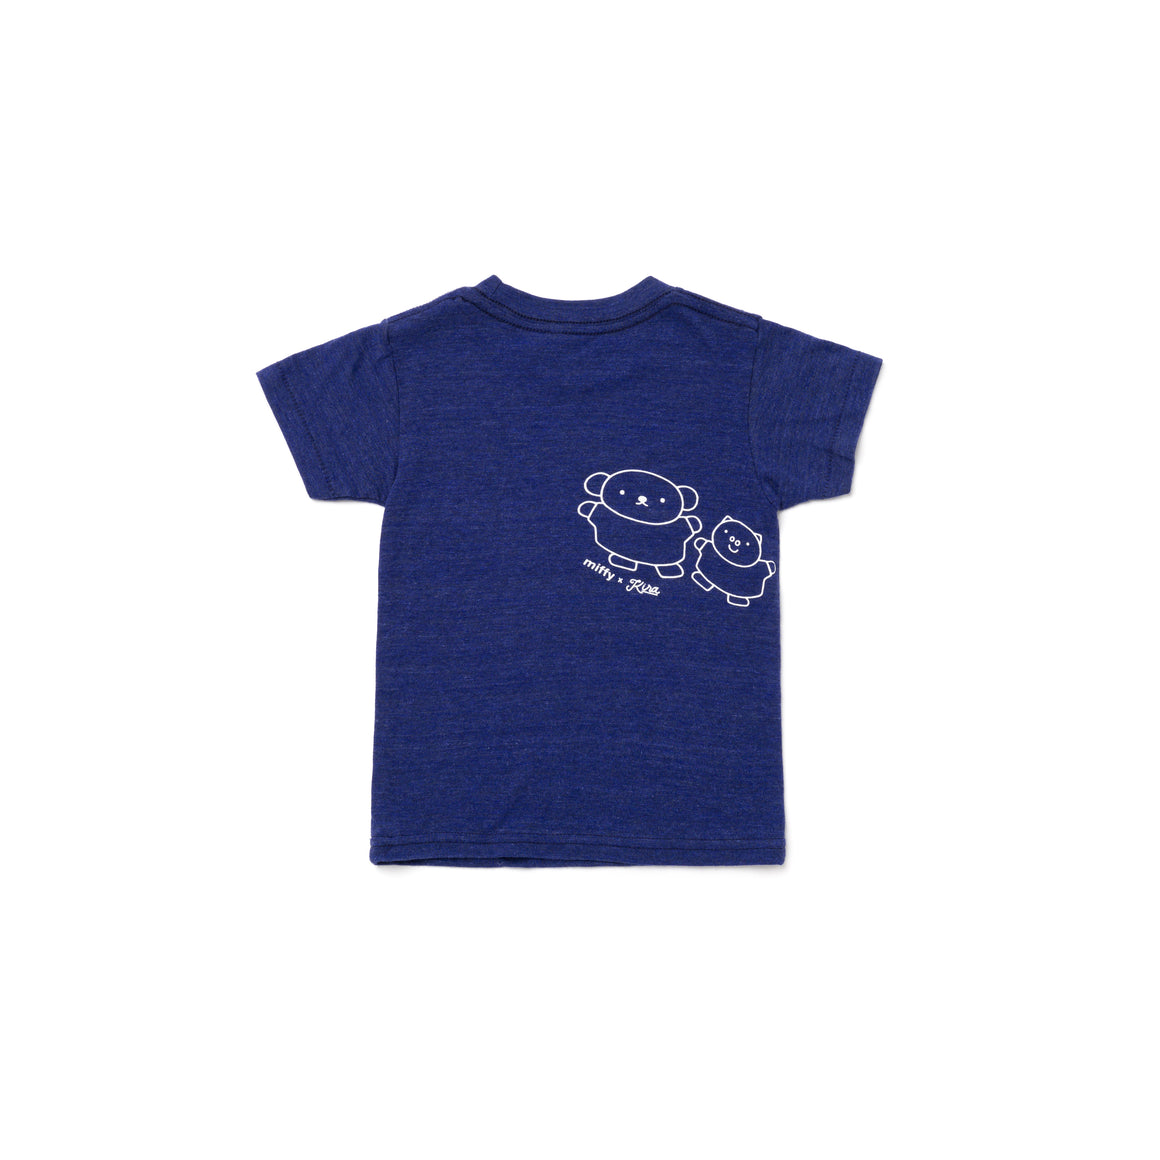 Miffy x Kira Friends T-shirt, Heather Indigo